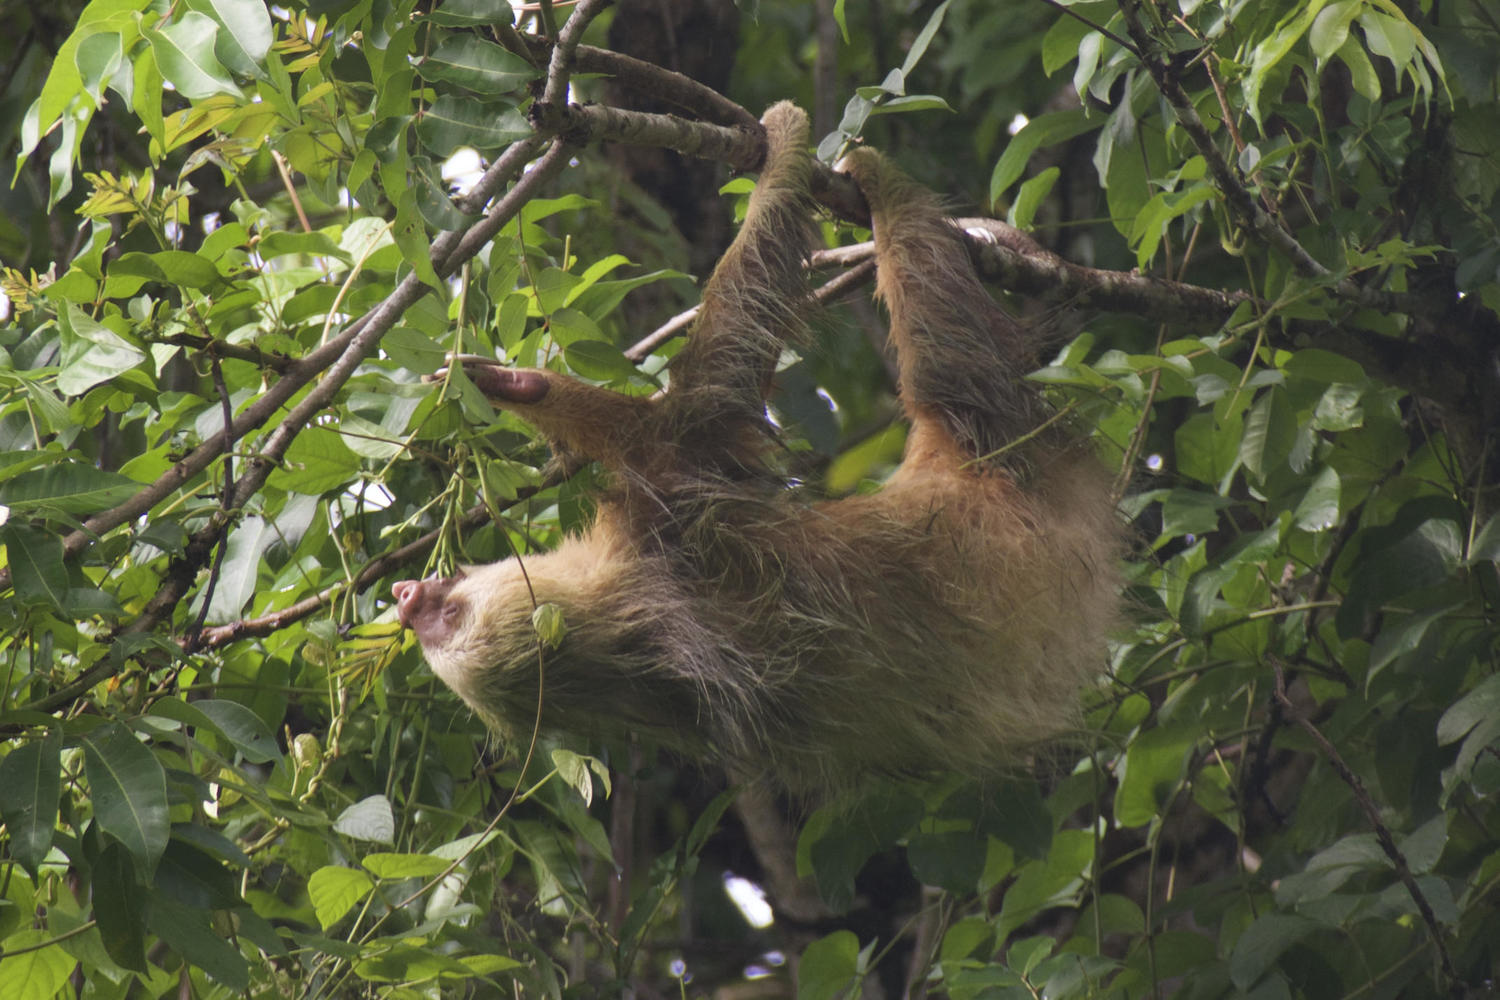 Hanging out in the Caribbean - a two-toed sloth in Cahuita